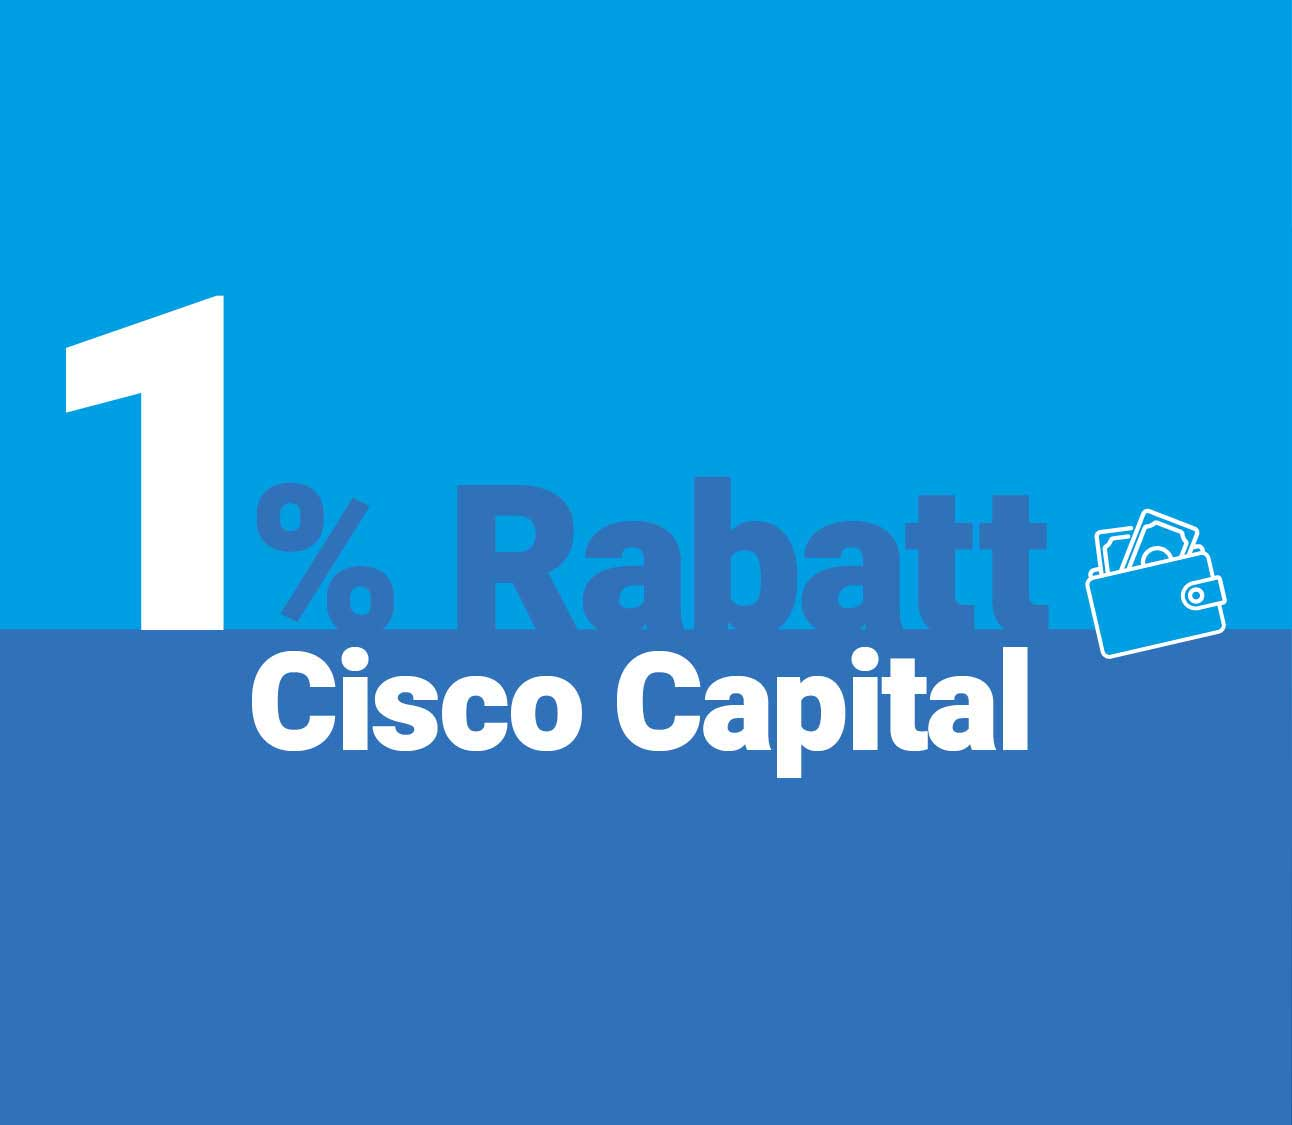 Cisco Capital Featured Image